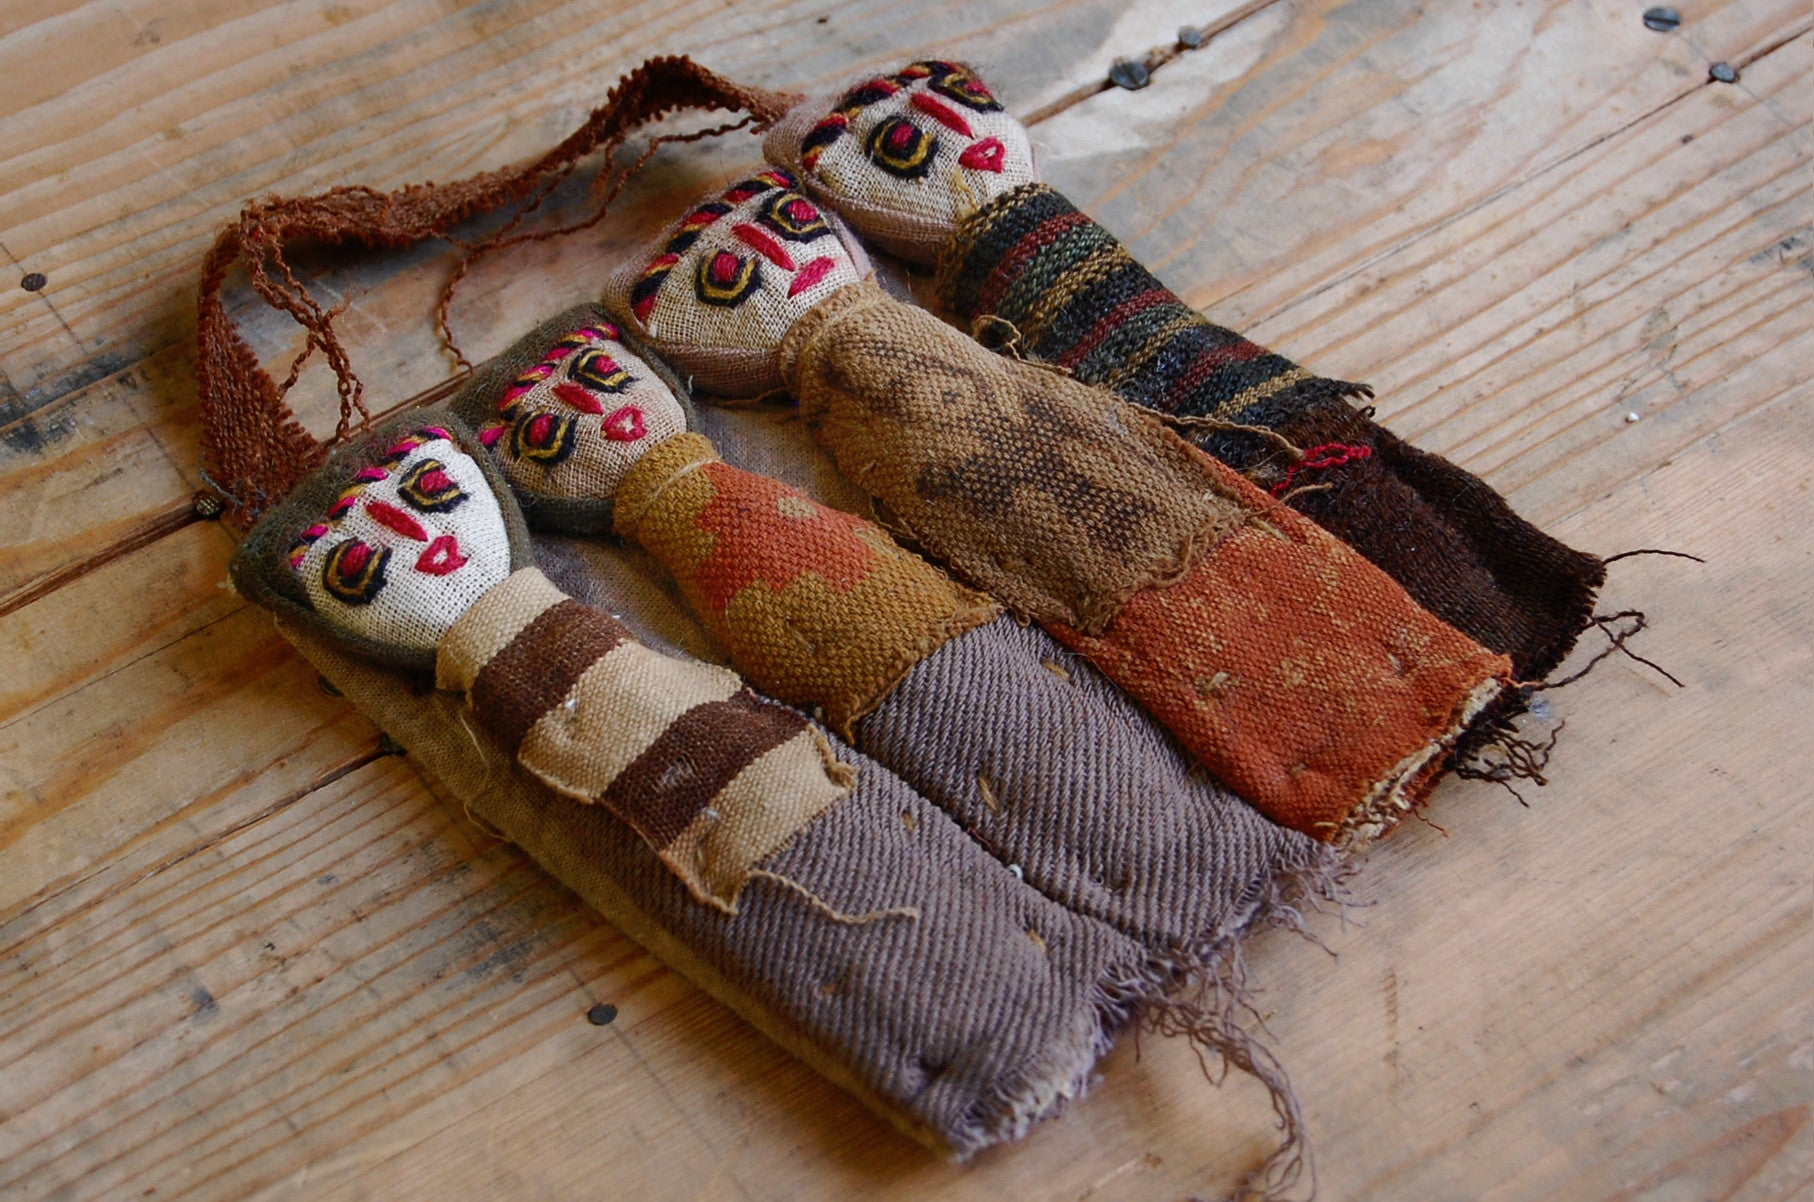 north argentinian nusta dolls